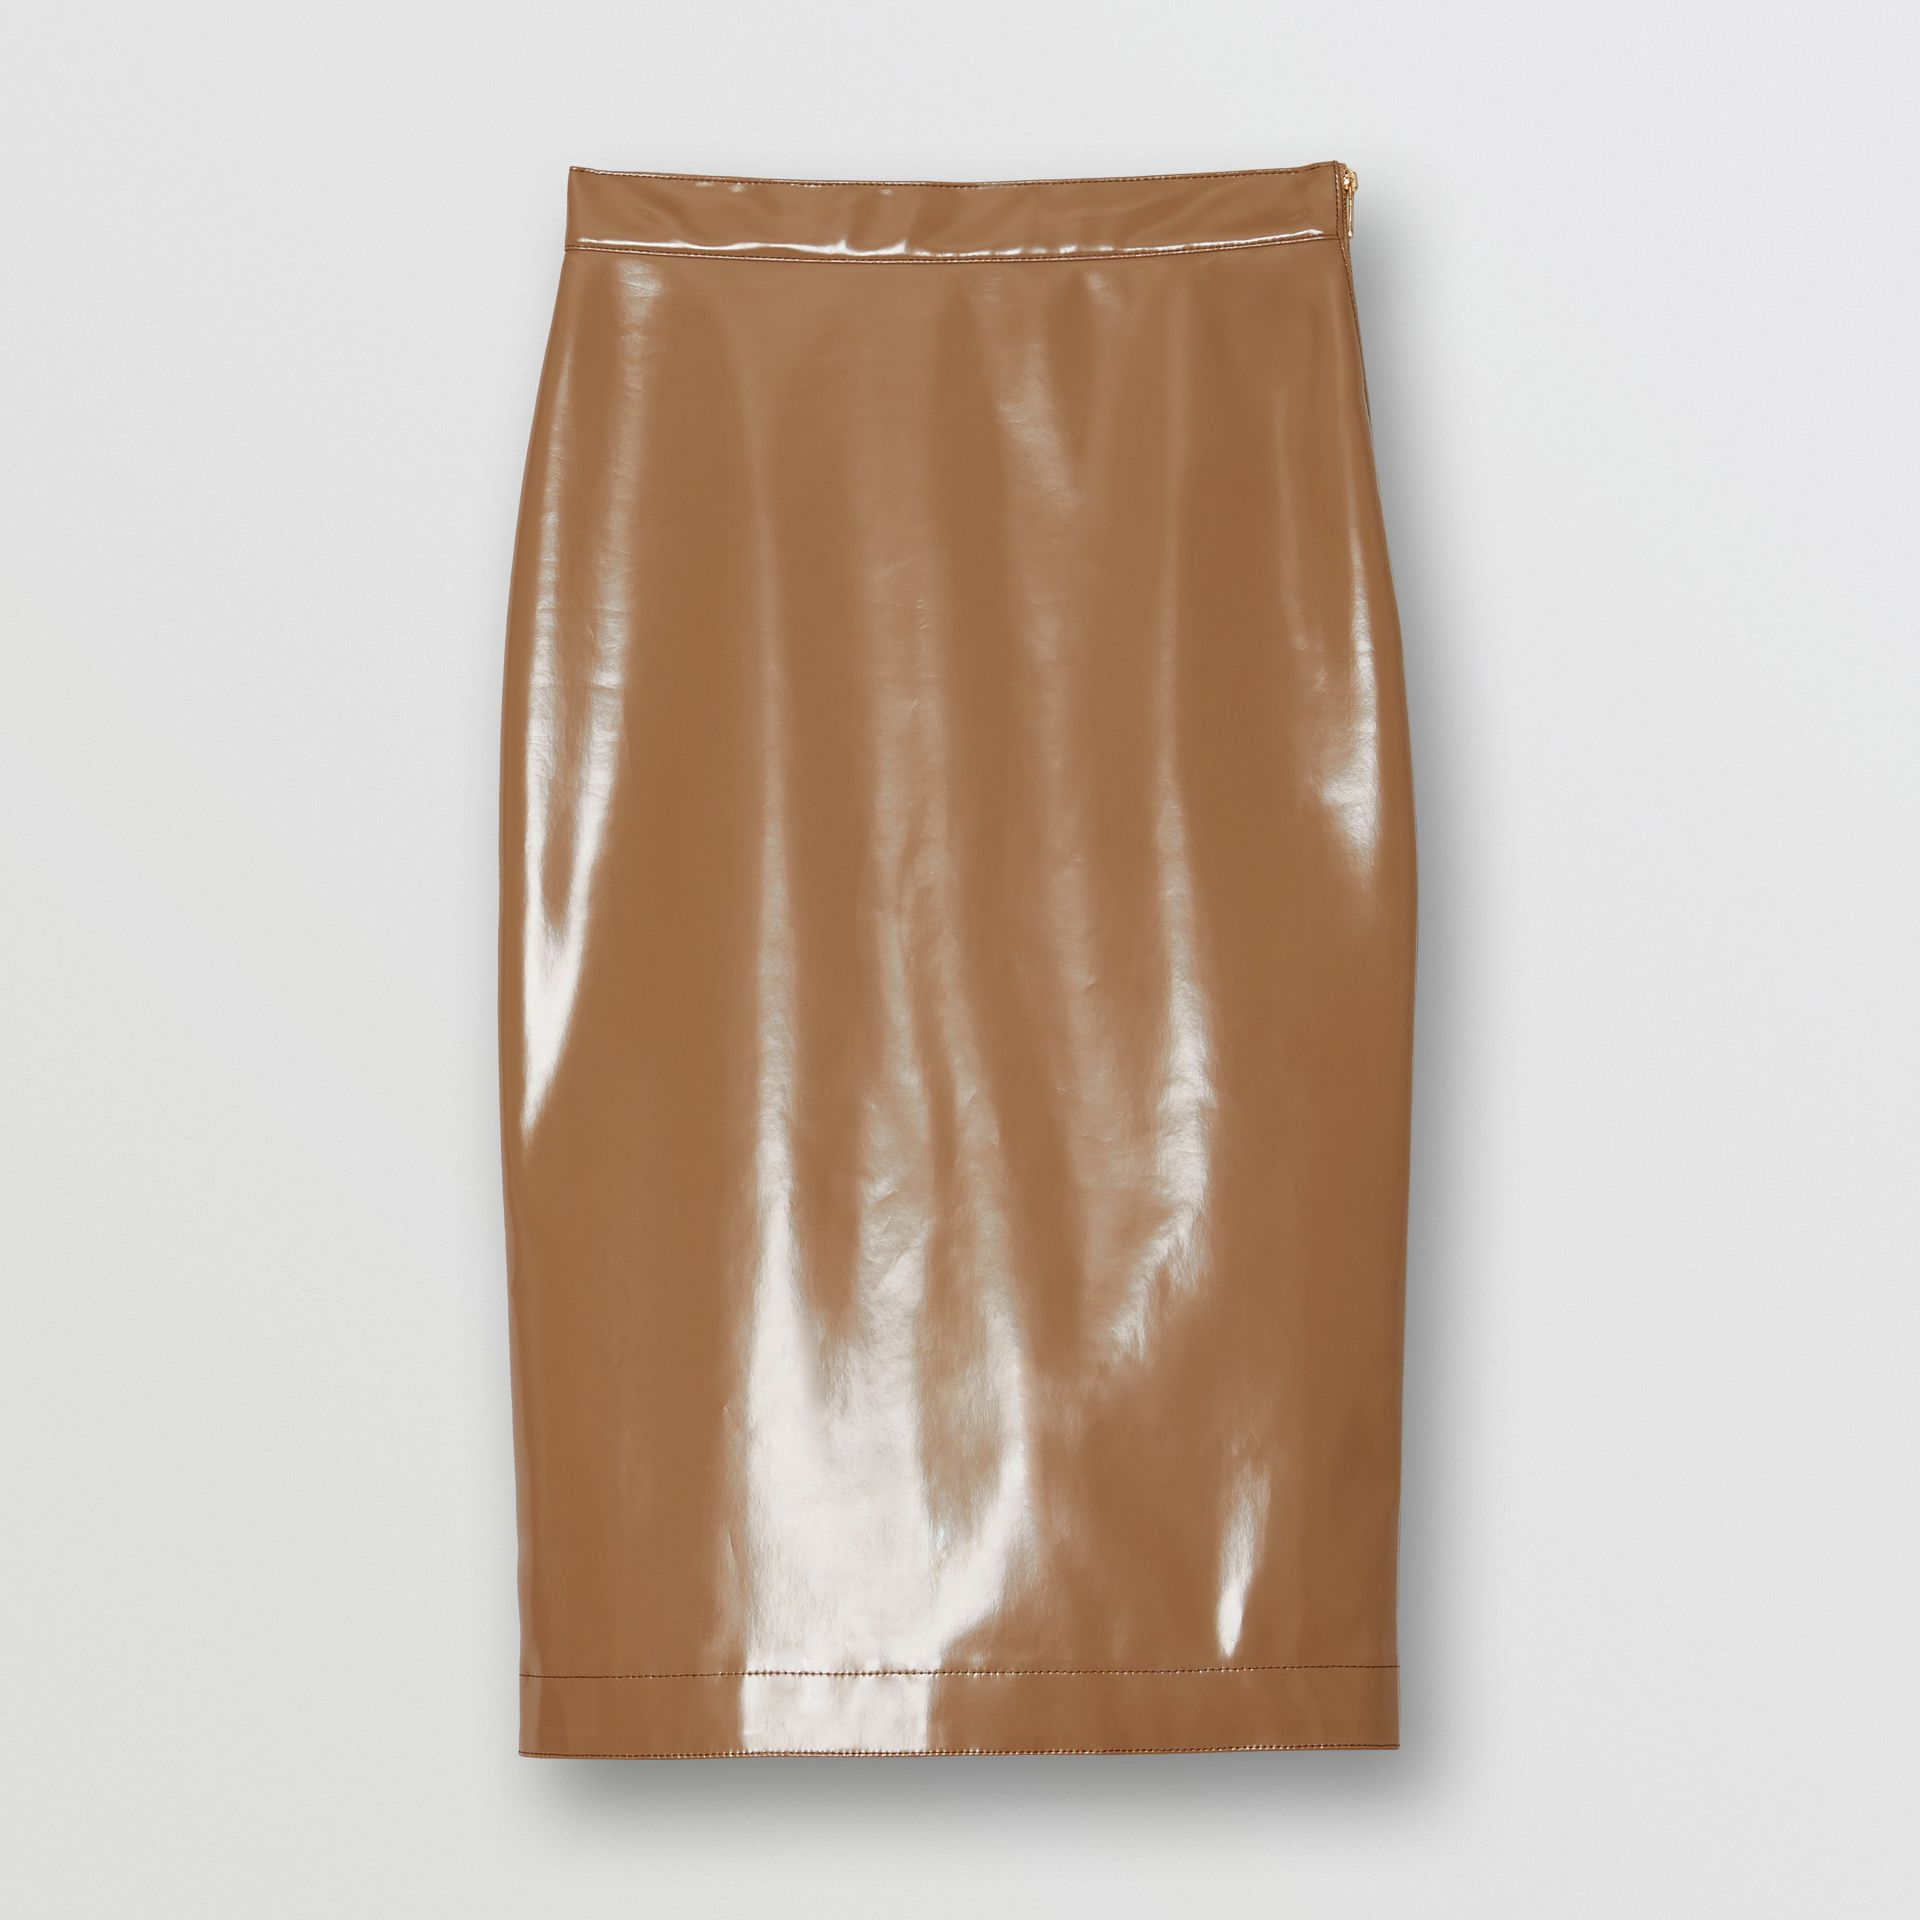 Vinyl Pencil Skirt in Utility Beige - Women | Burberry - gallery image 3